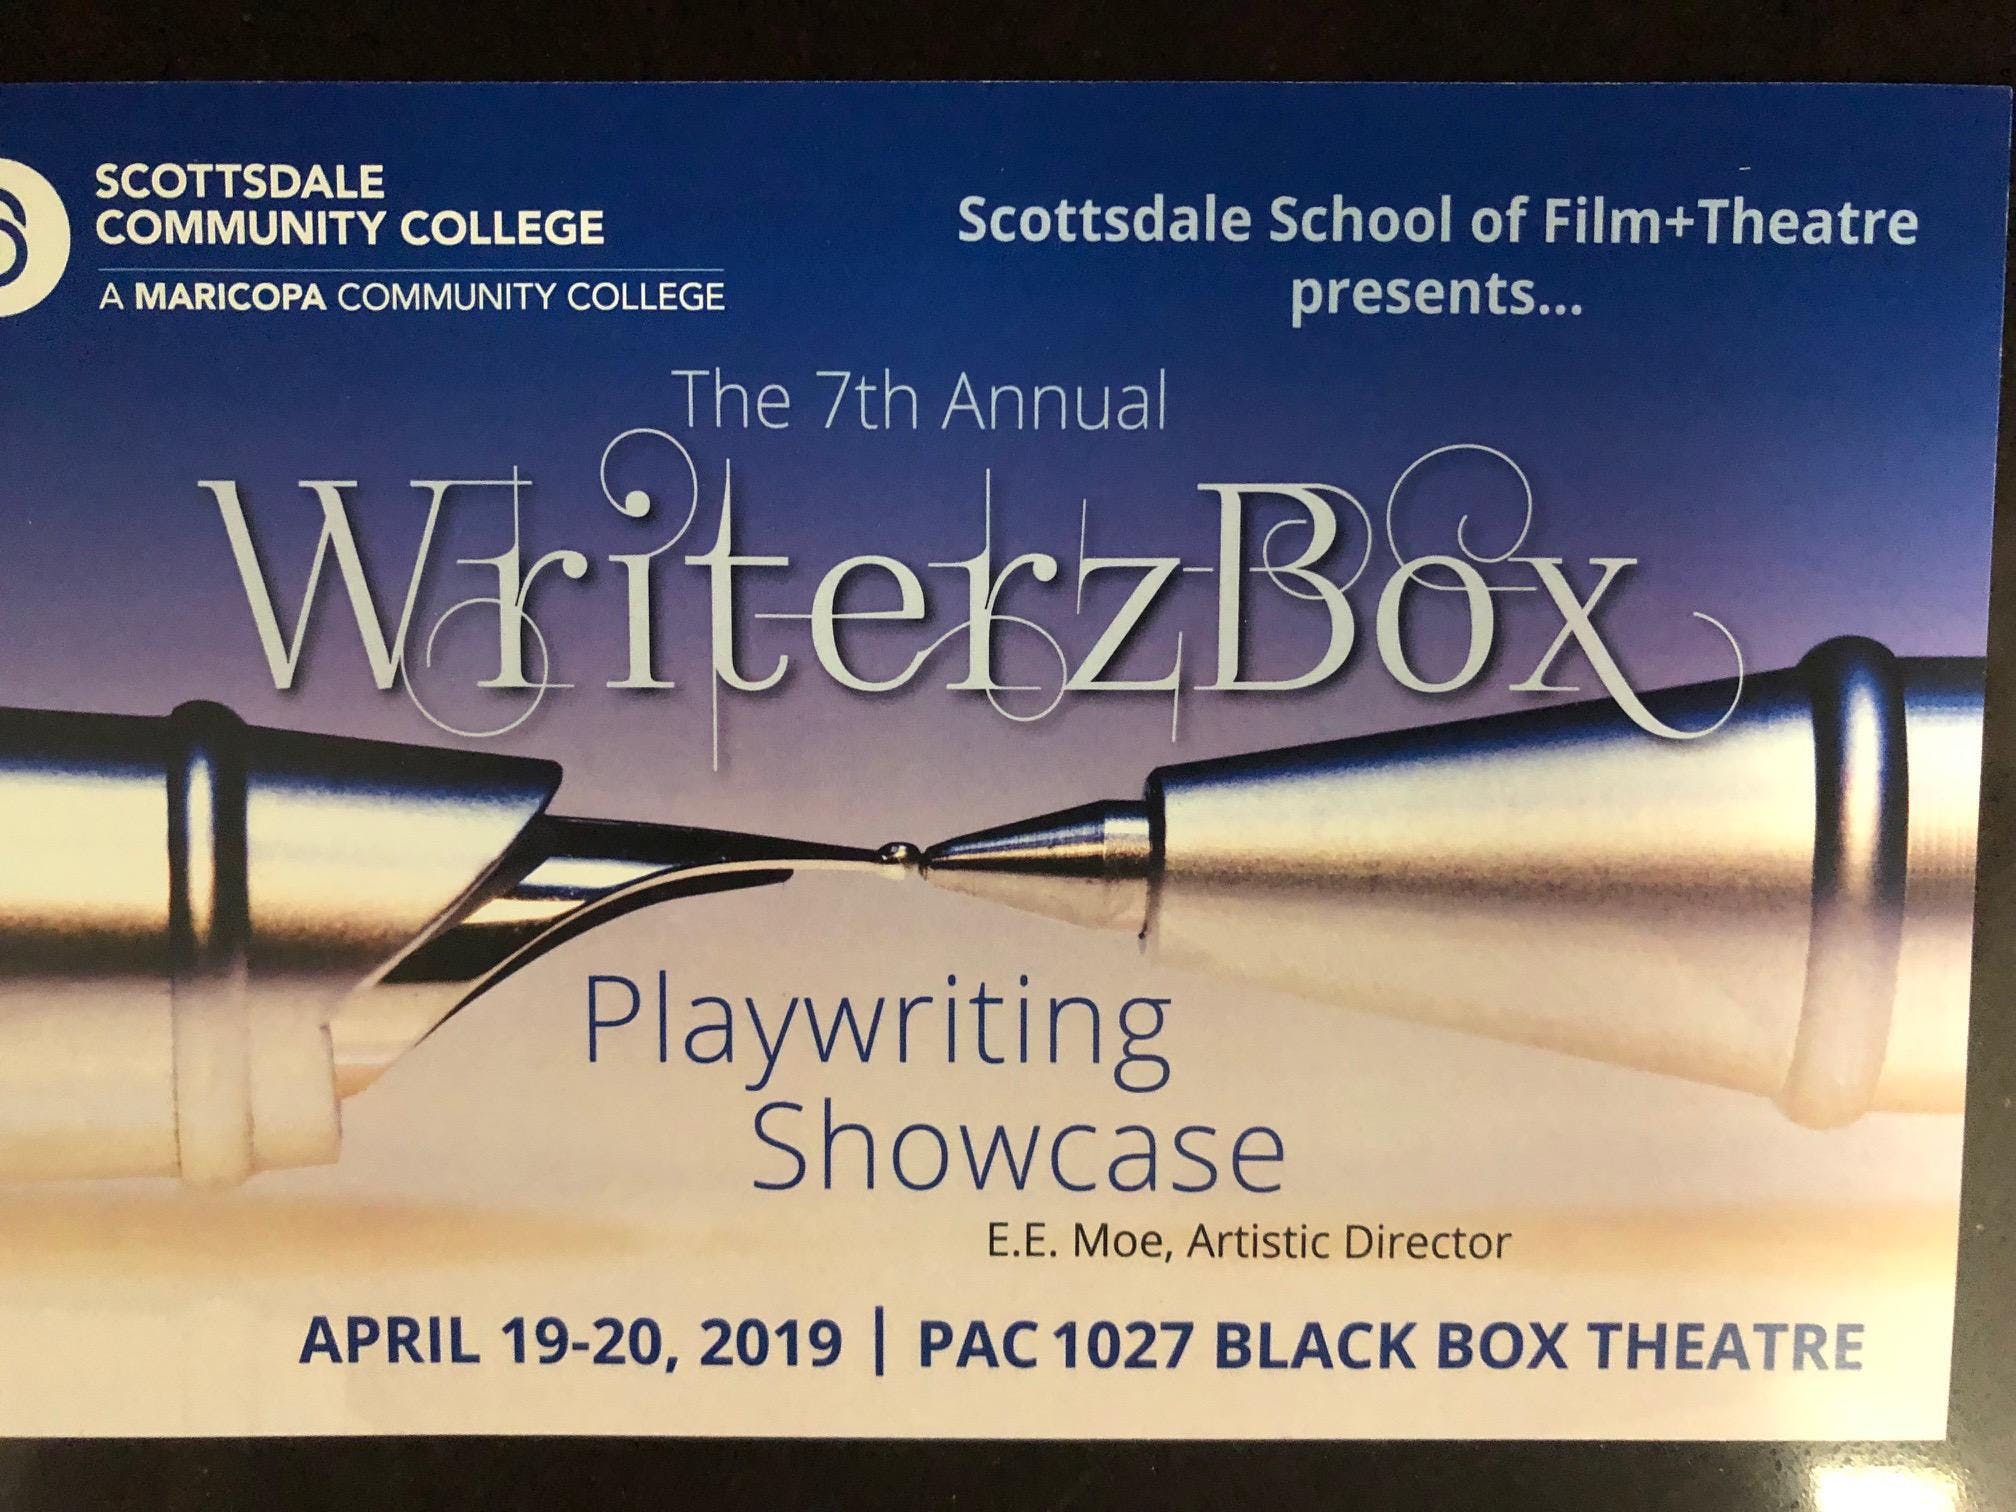 The 7th Annual WriterzBox Playwriting Showcase